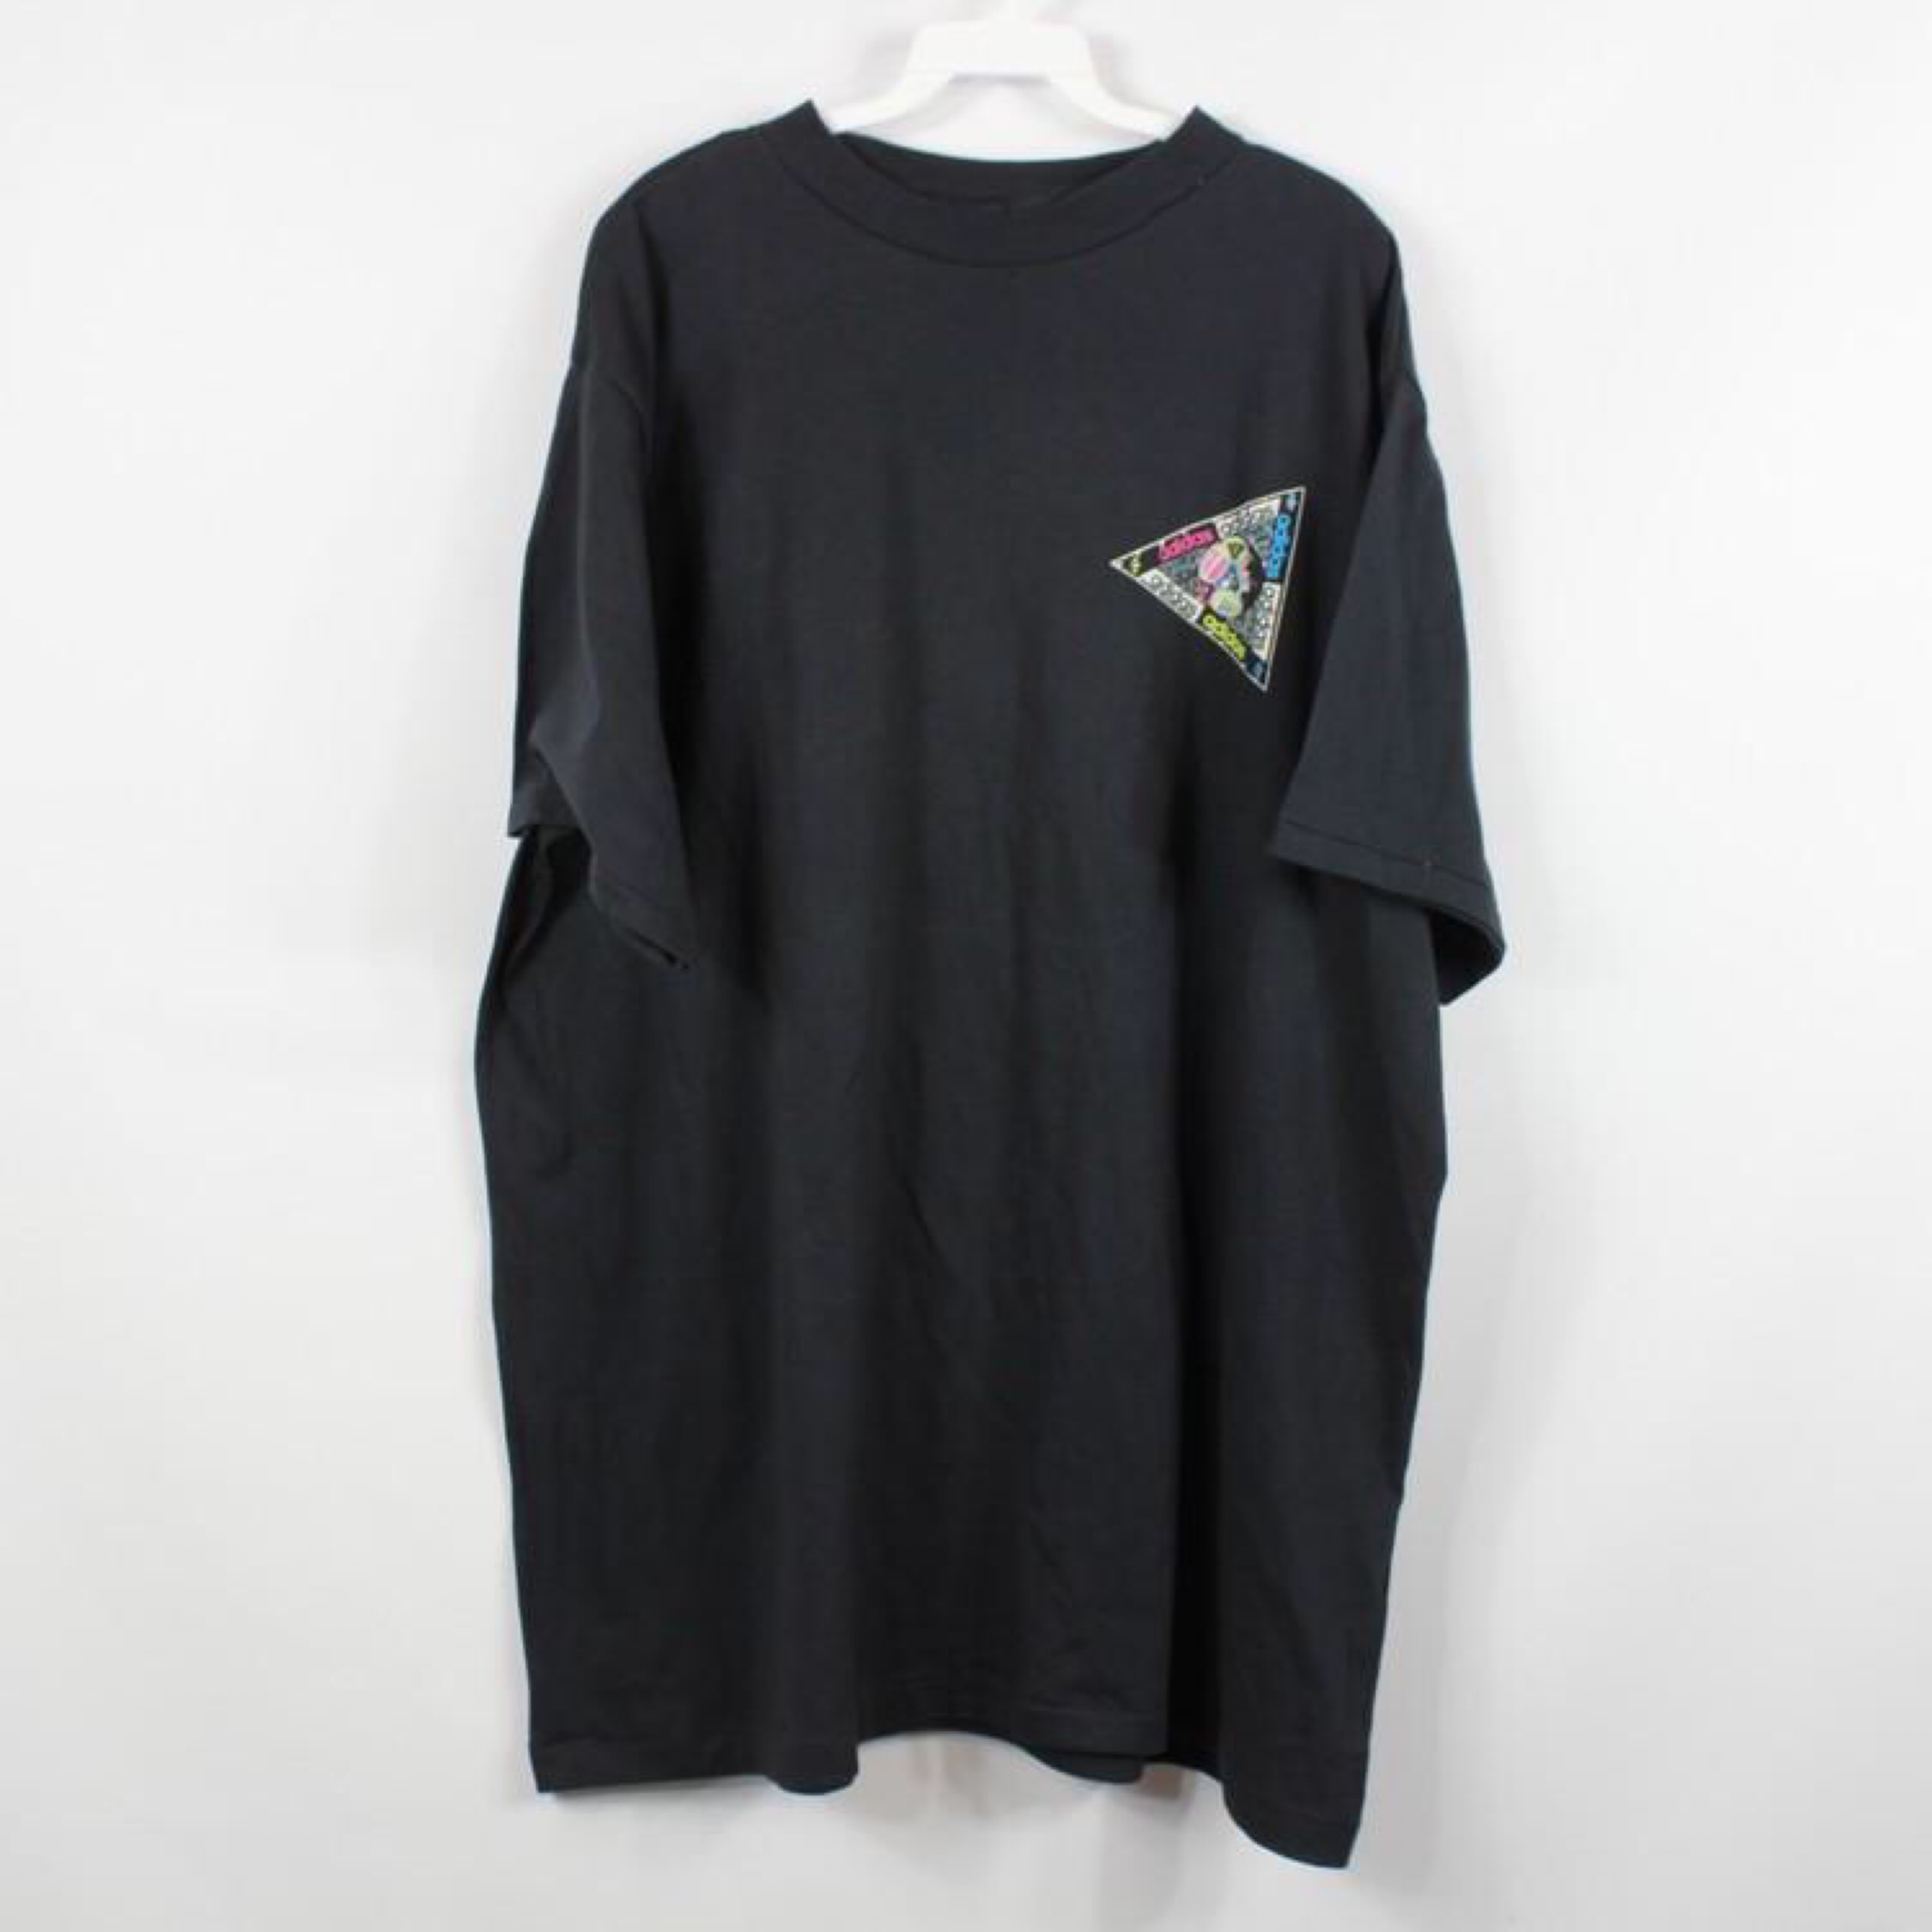 0361dce0a1ddb Vintage Adidas Spellout Soccer T Shirt